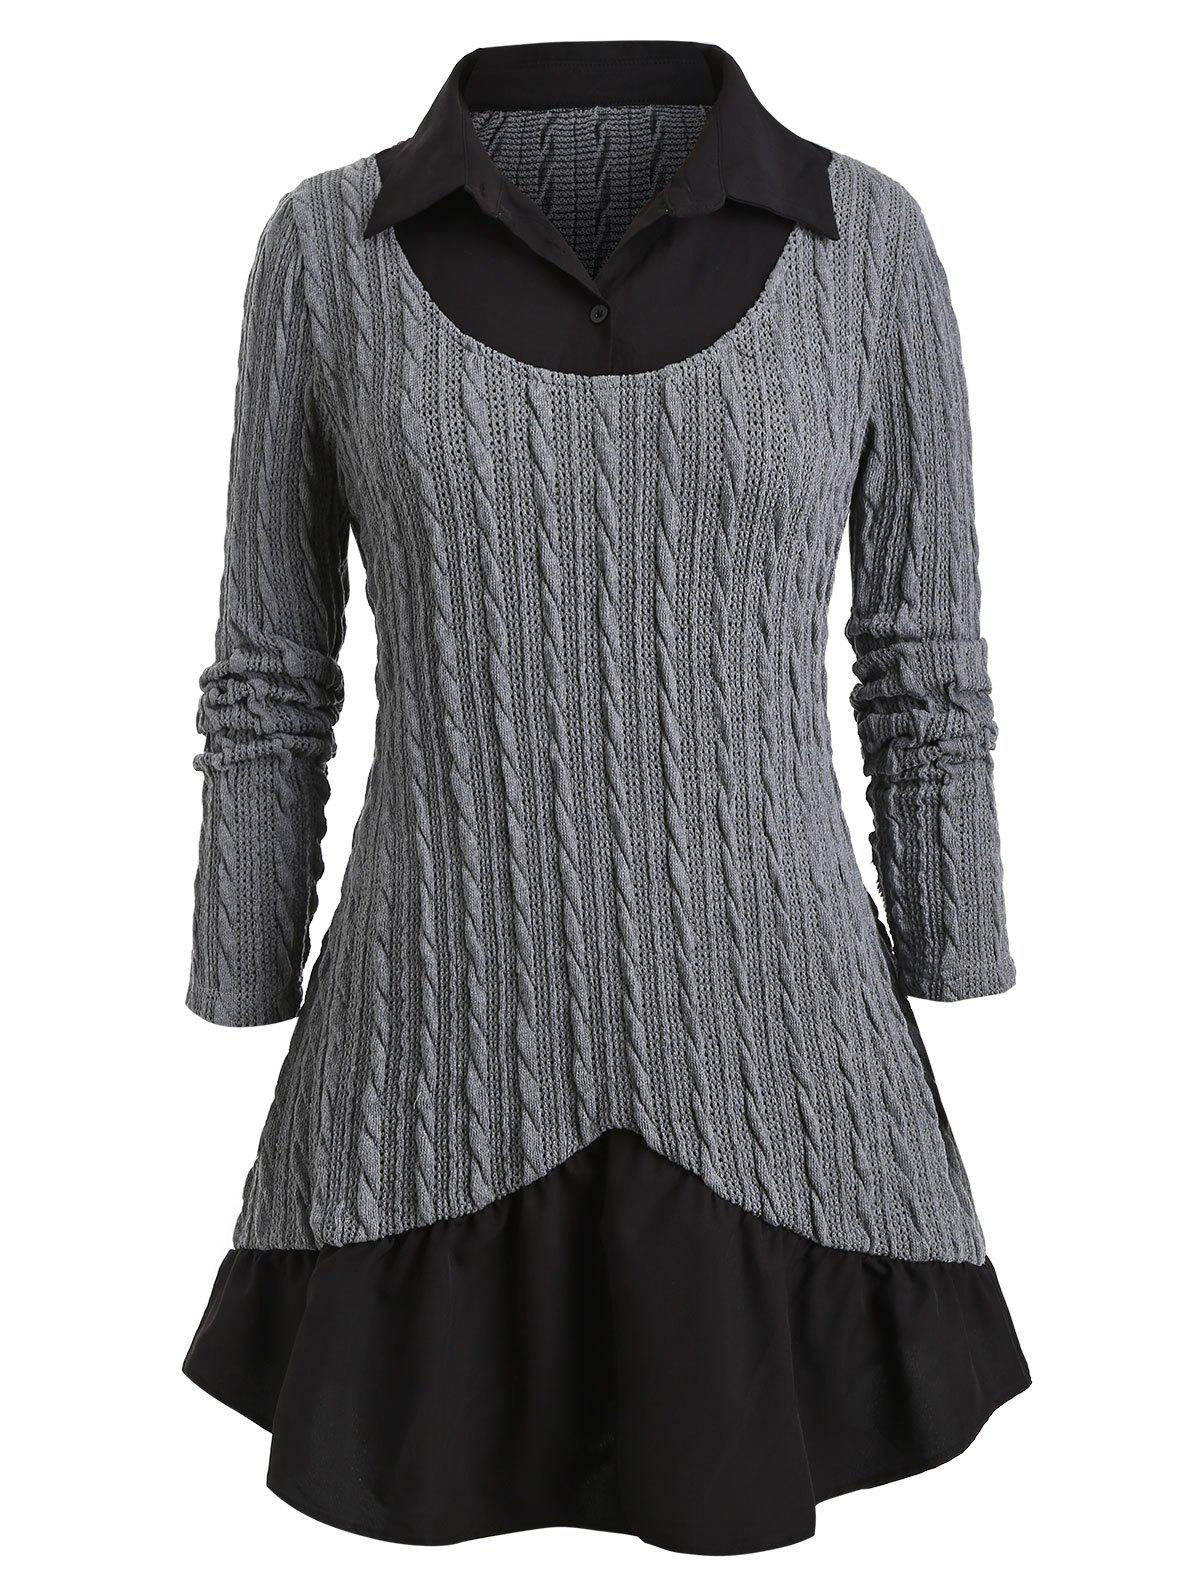 Plus Size Cable Knit Twofer Sweater - GRAY 5X